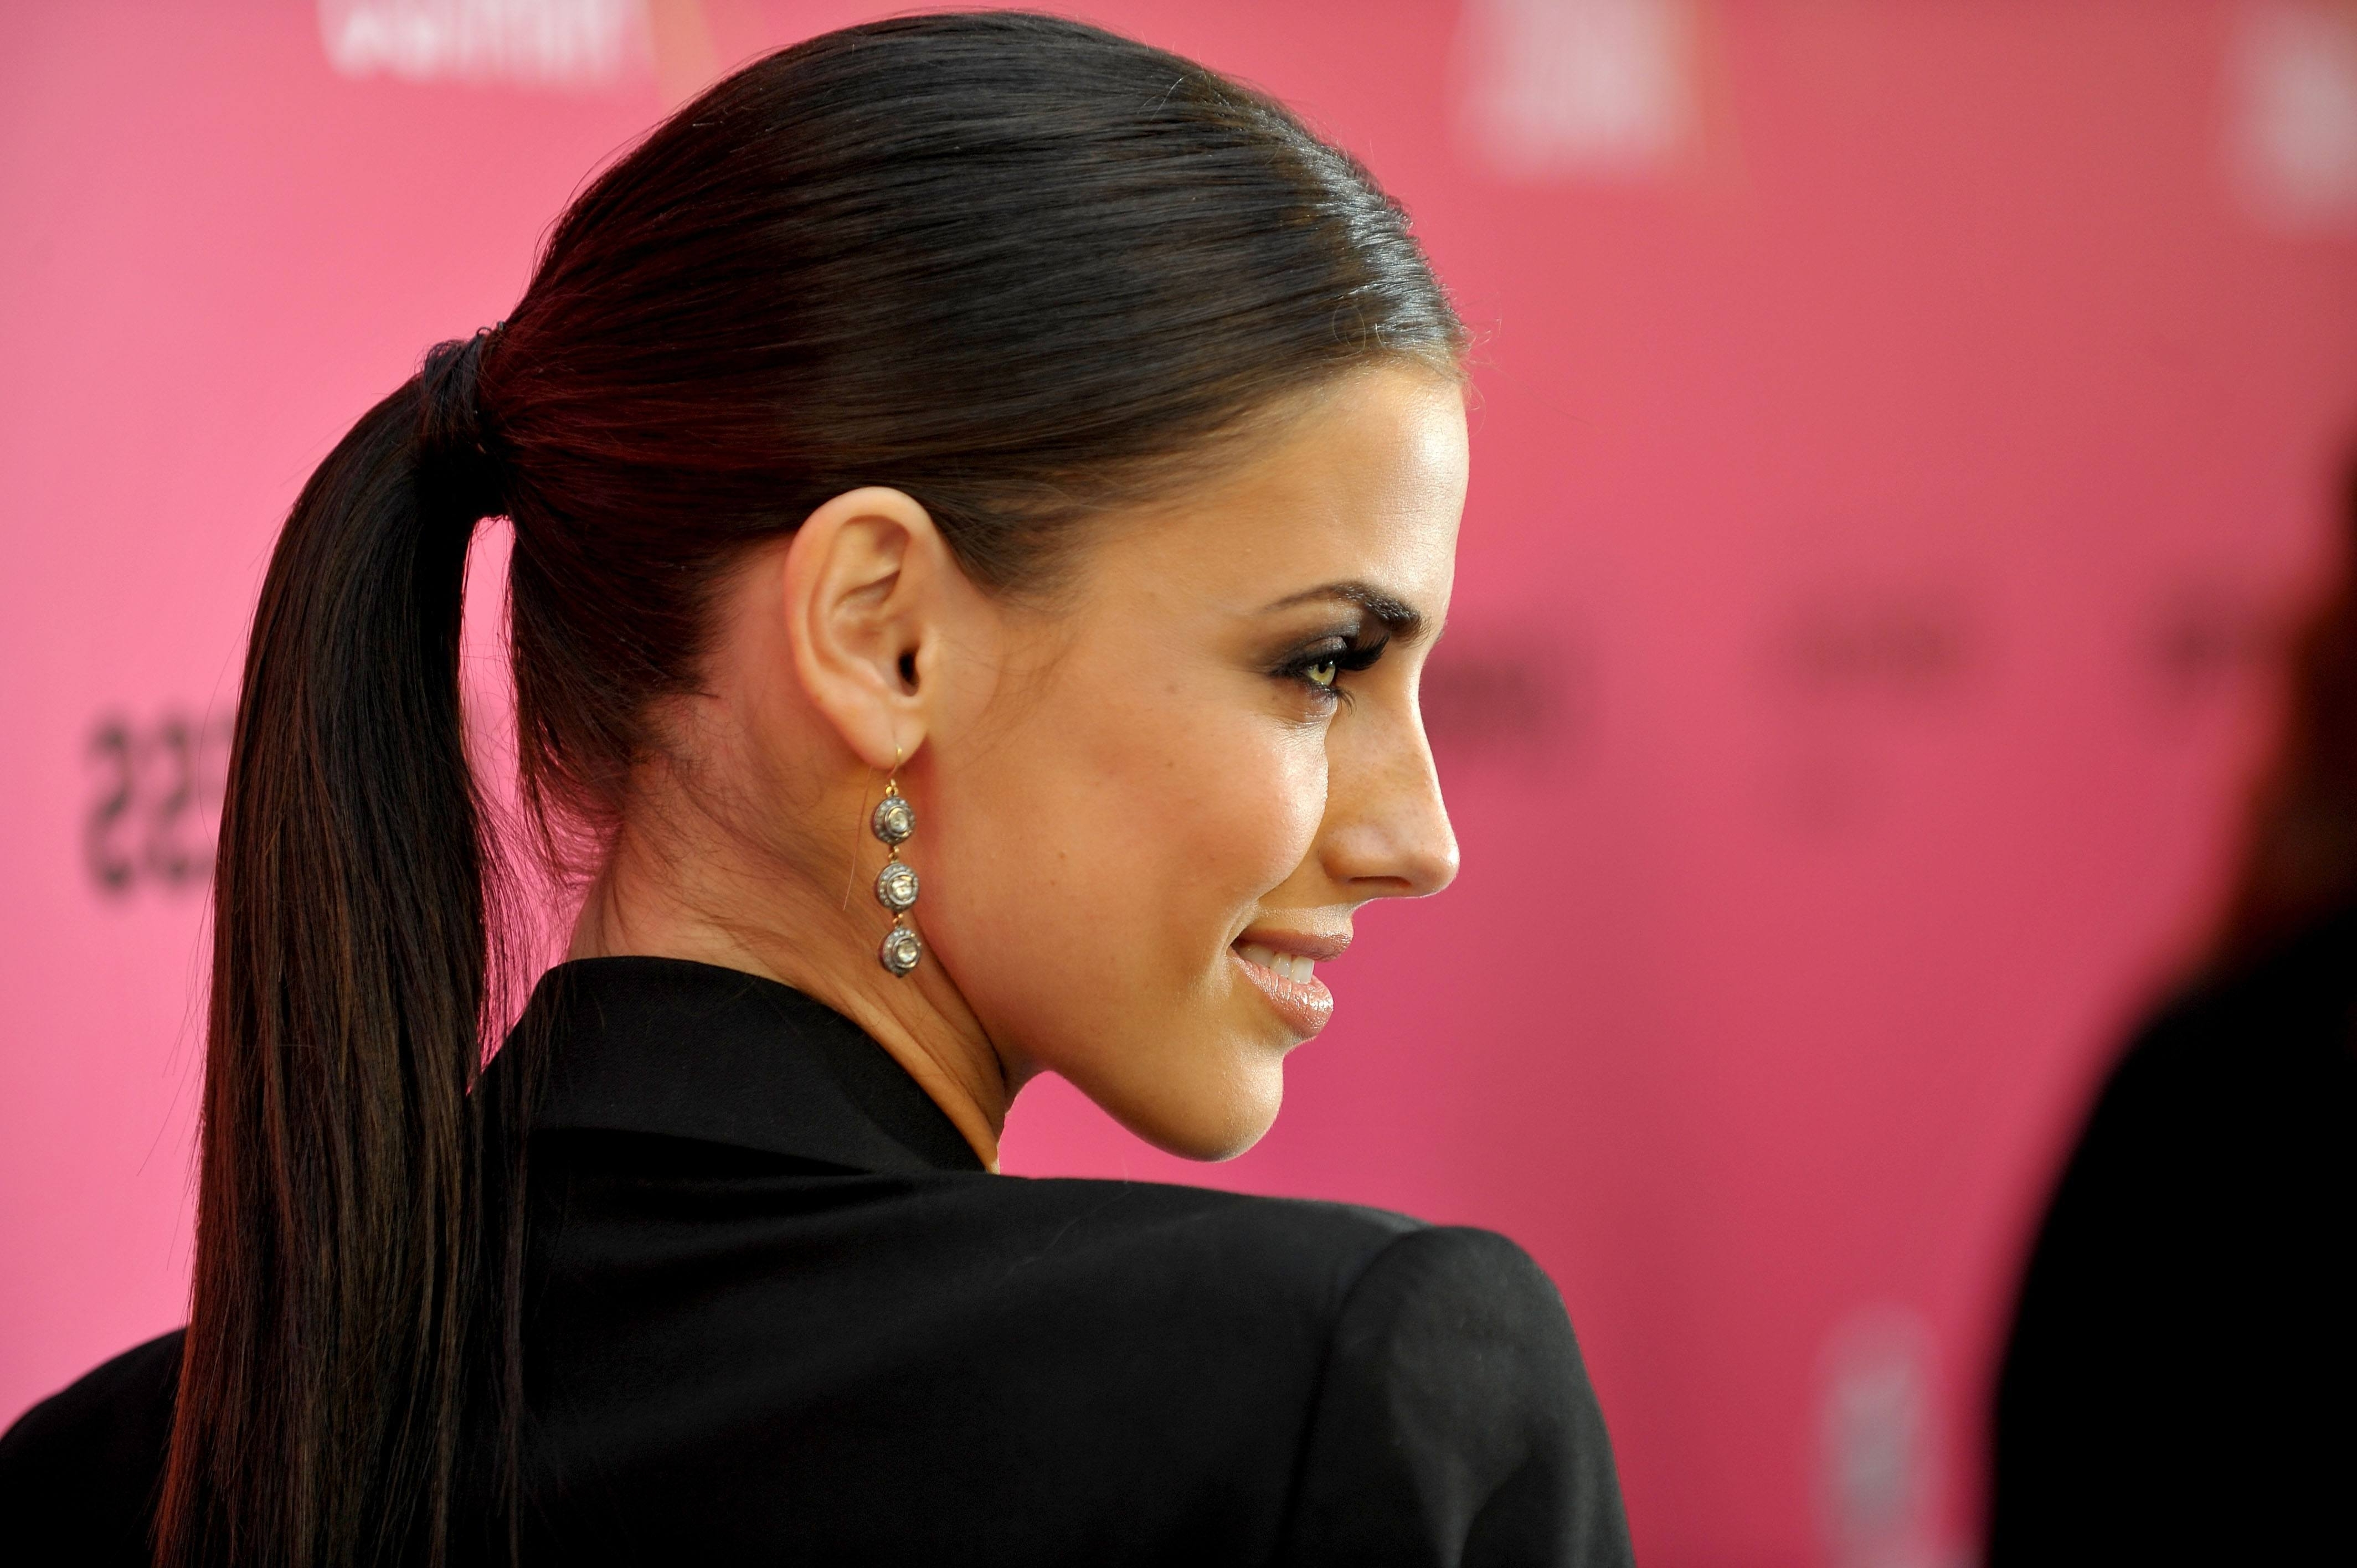 Top 25 Easy And Beautiful Ponytail Hairstyles Within Best And Newest Black Ponytail Hairstyles With A Bouffant (View 20 of 20)